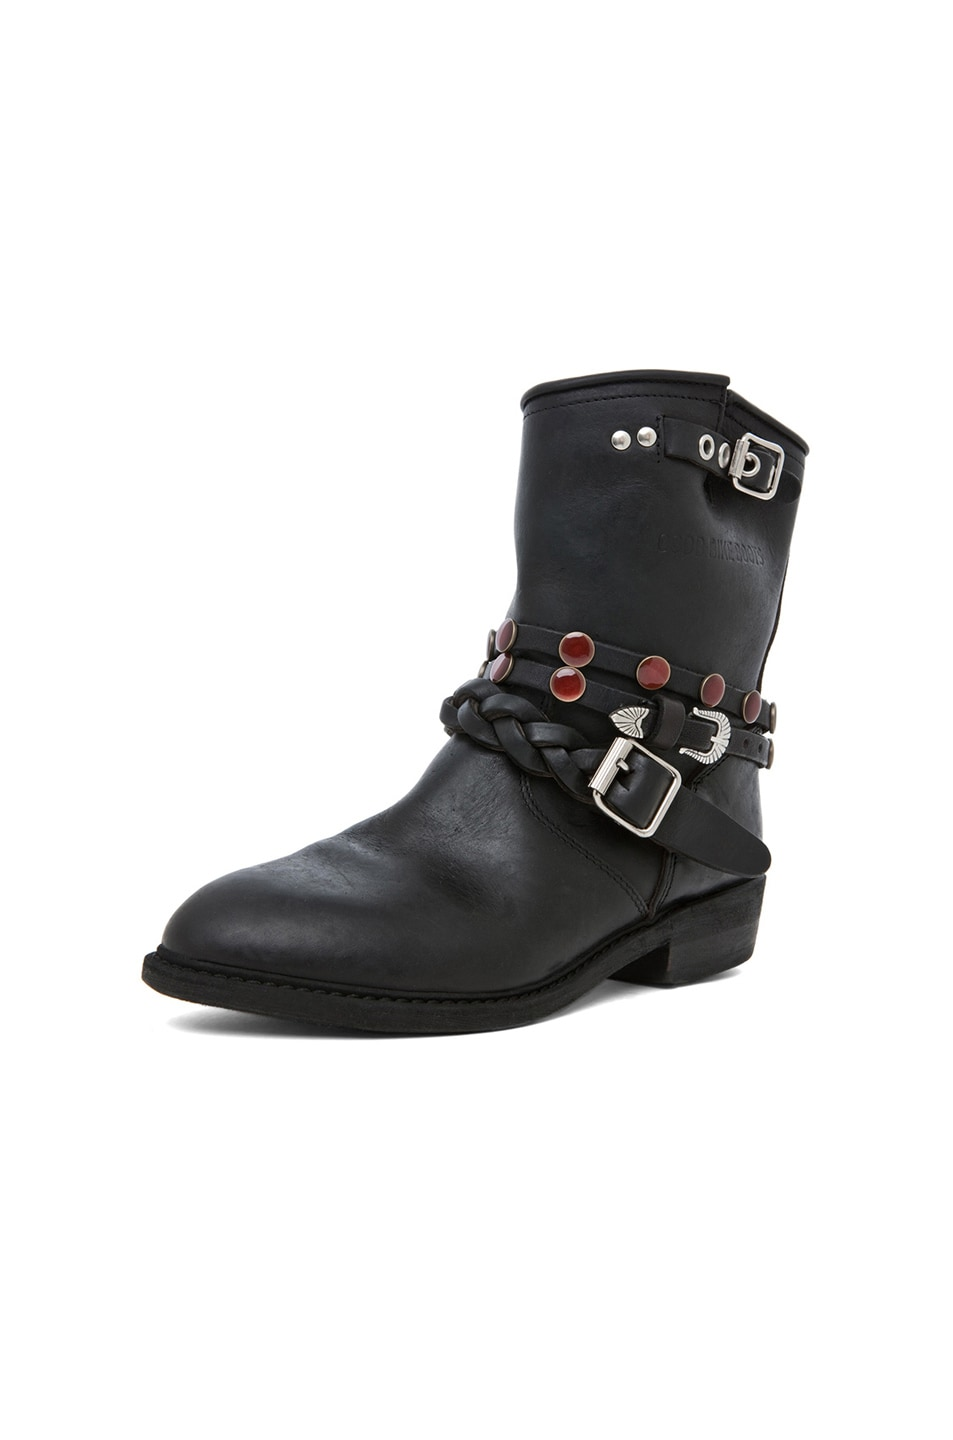 Image 6 of Golden Goose Leather Short Biker Boots in Black Stud